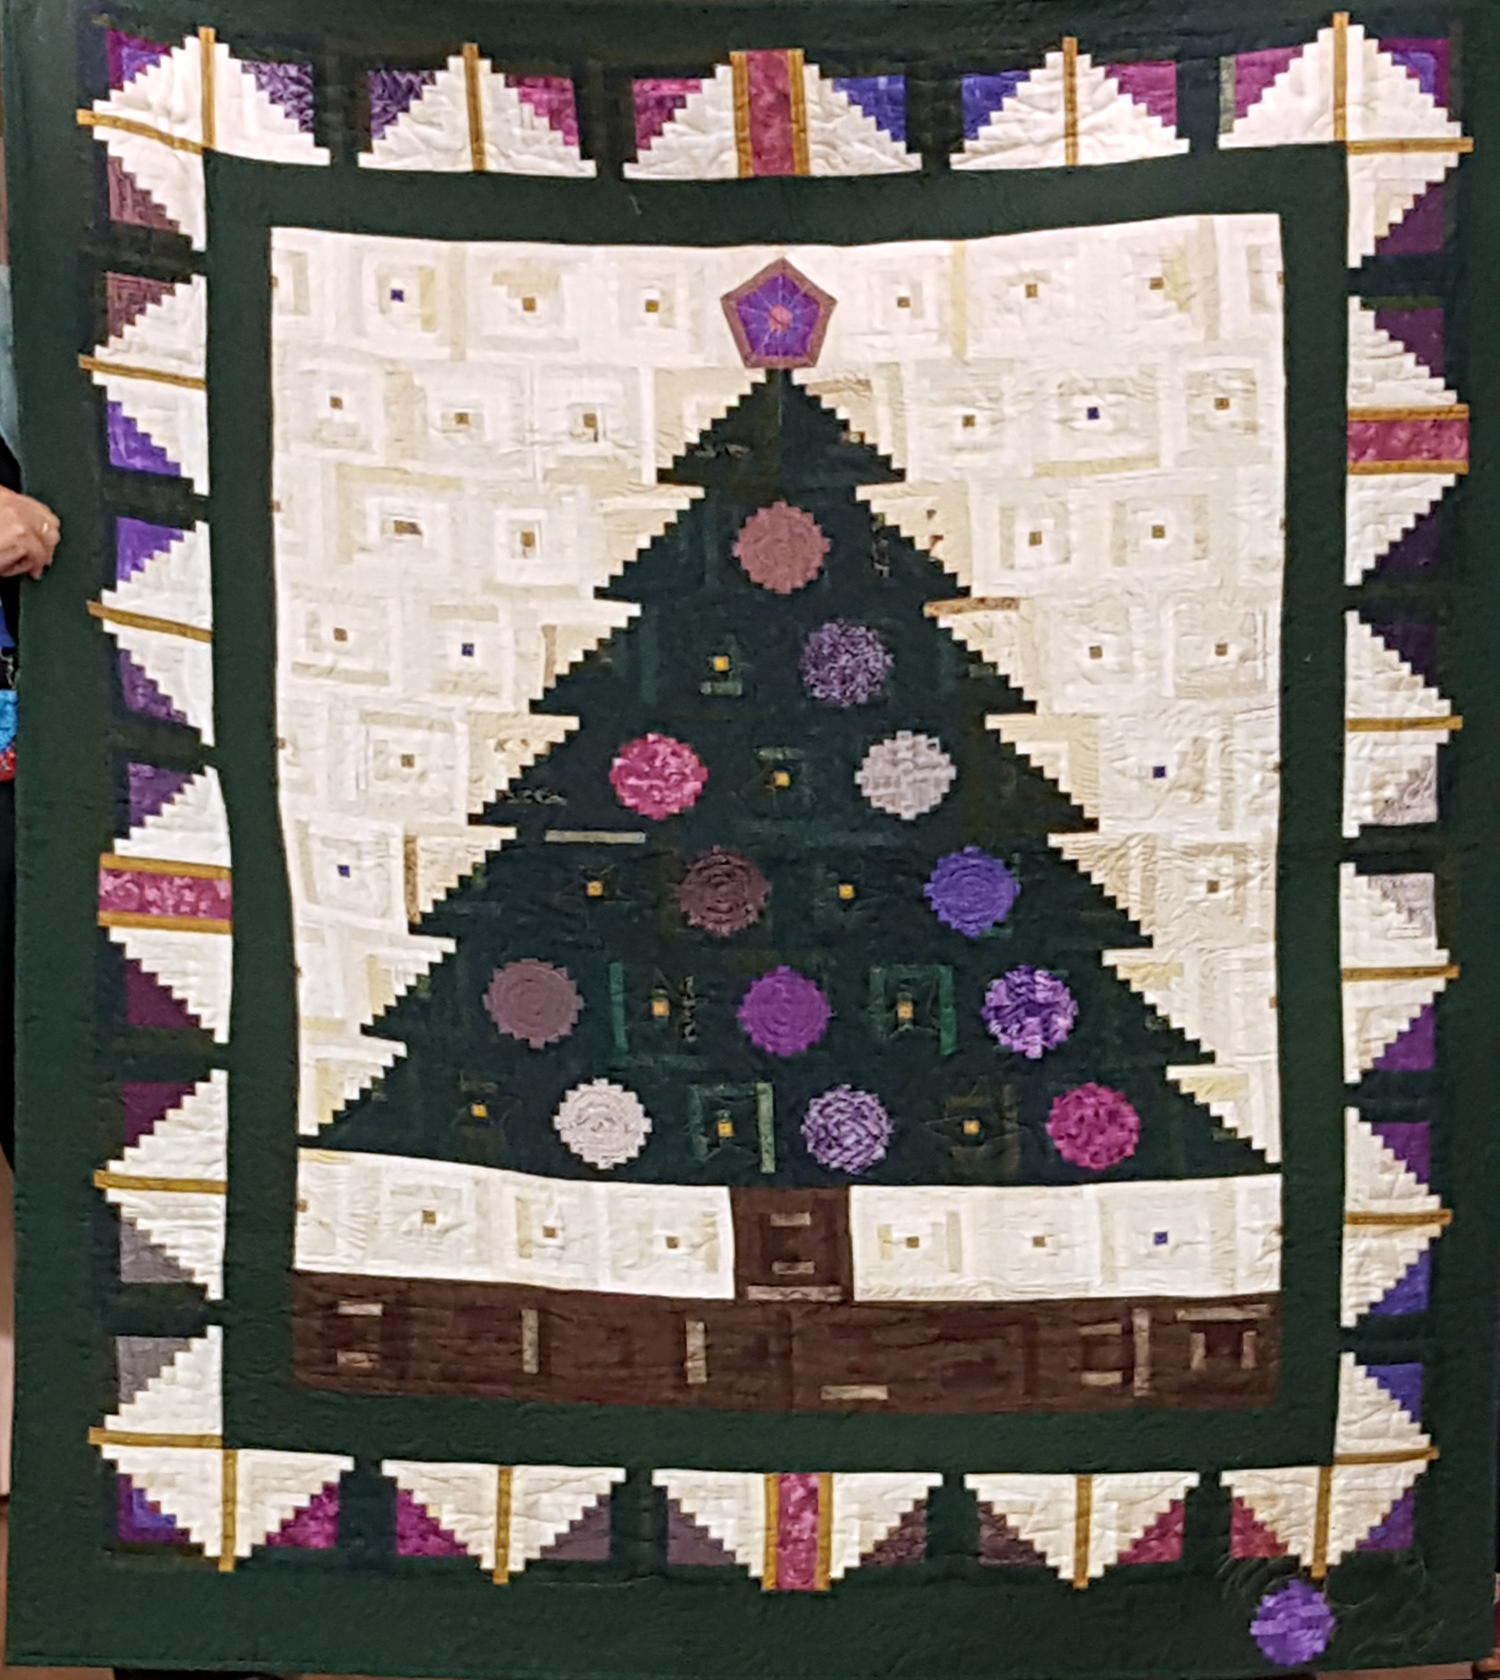 christmas tree with ornaments.jpg